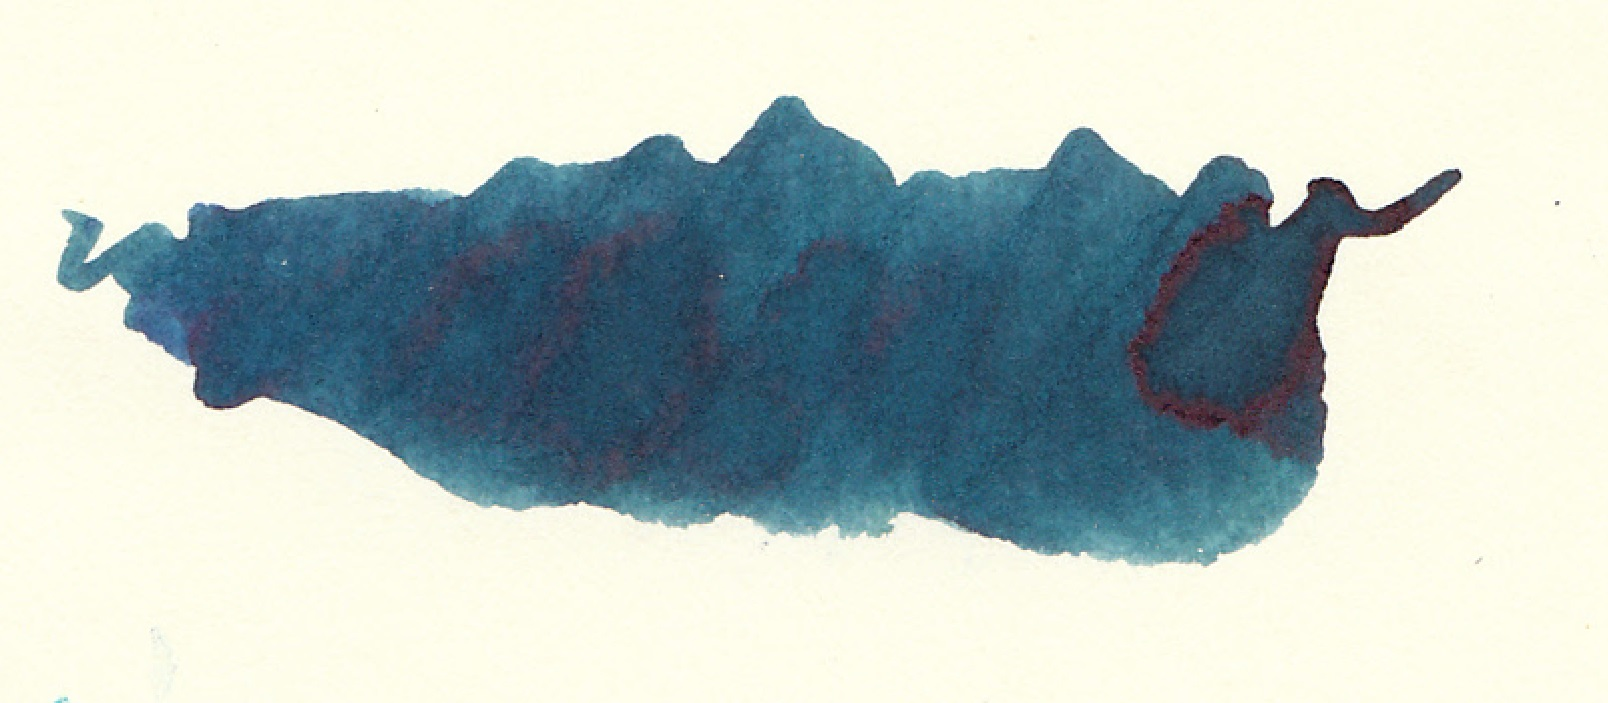 fpn_1463256888__oxfordblue_diamine_tomoe